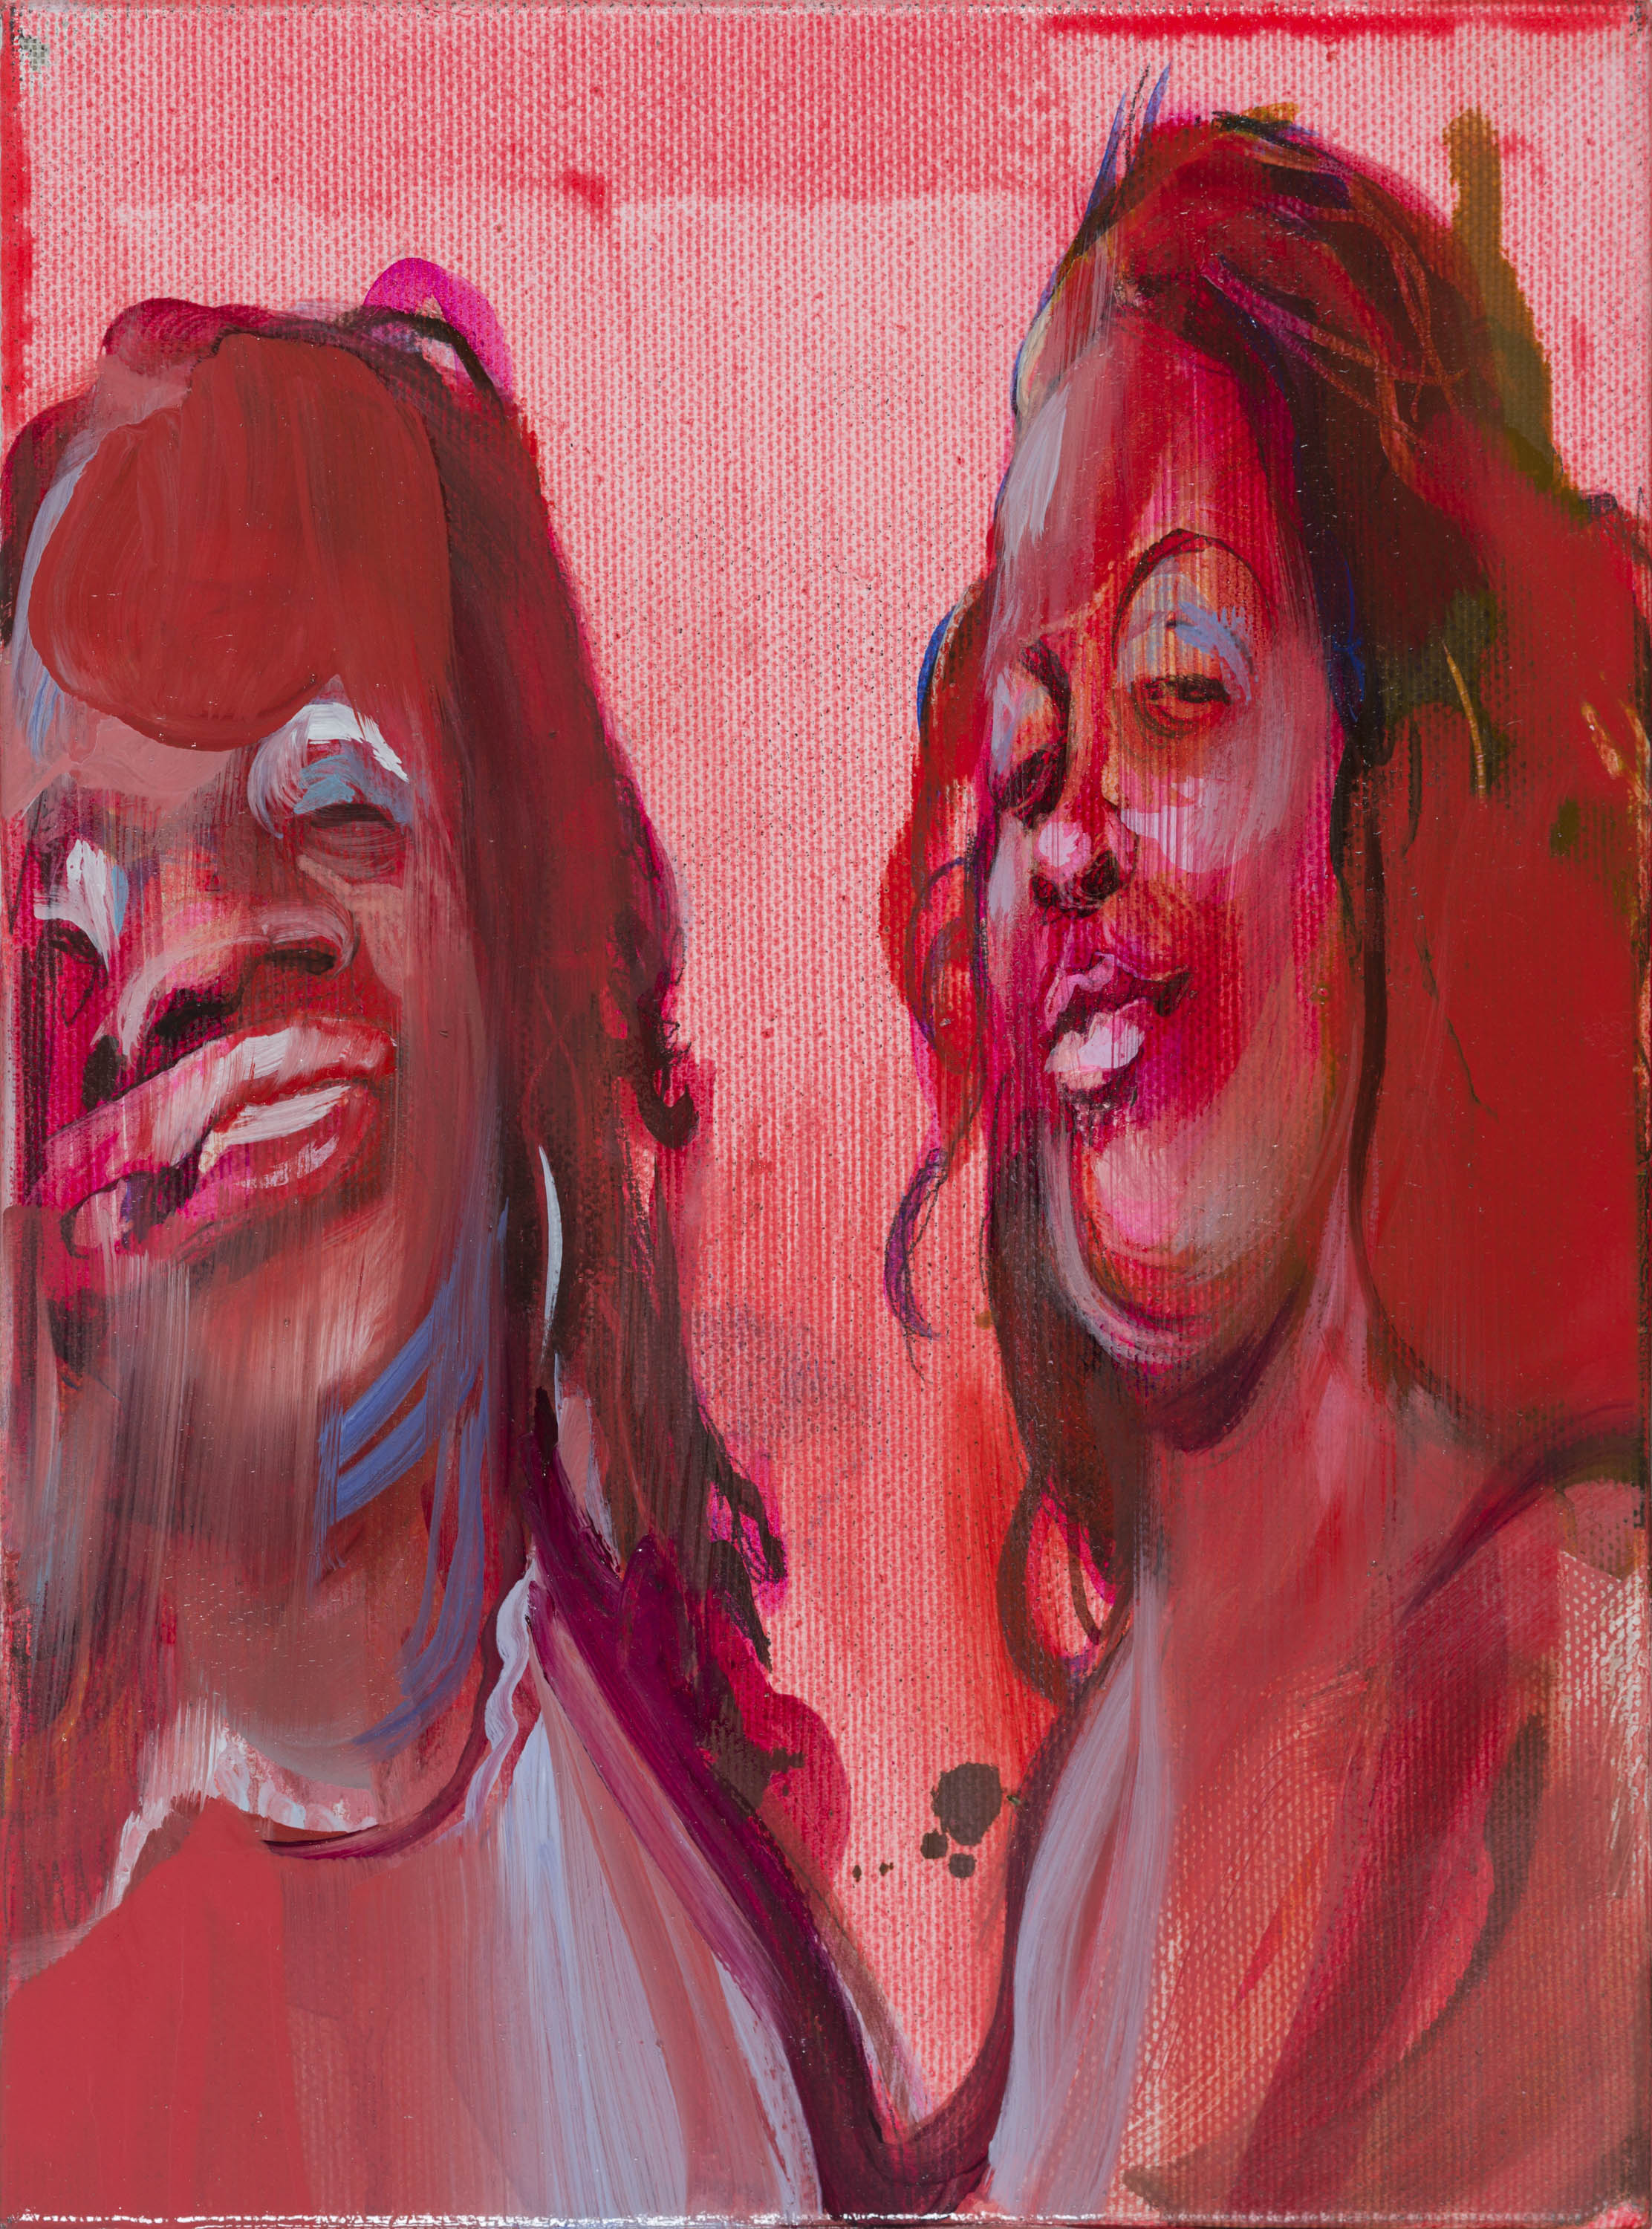 Untitled (Distorted Creole Women IV), 2016